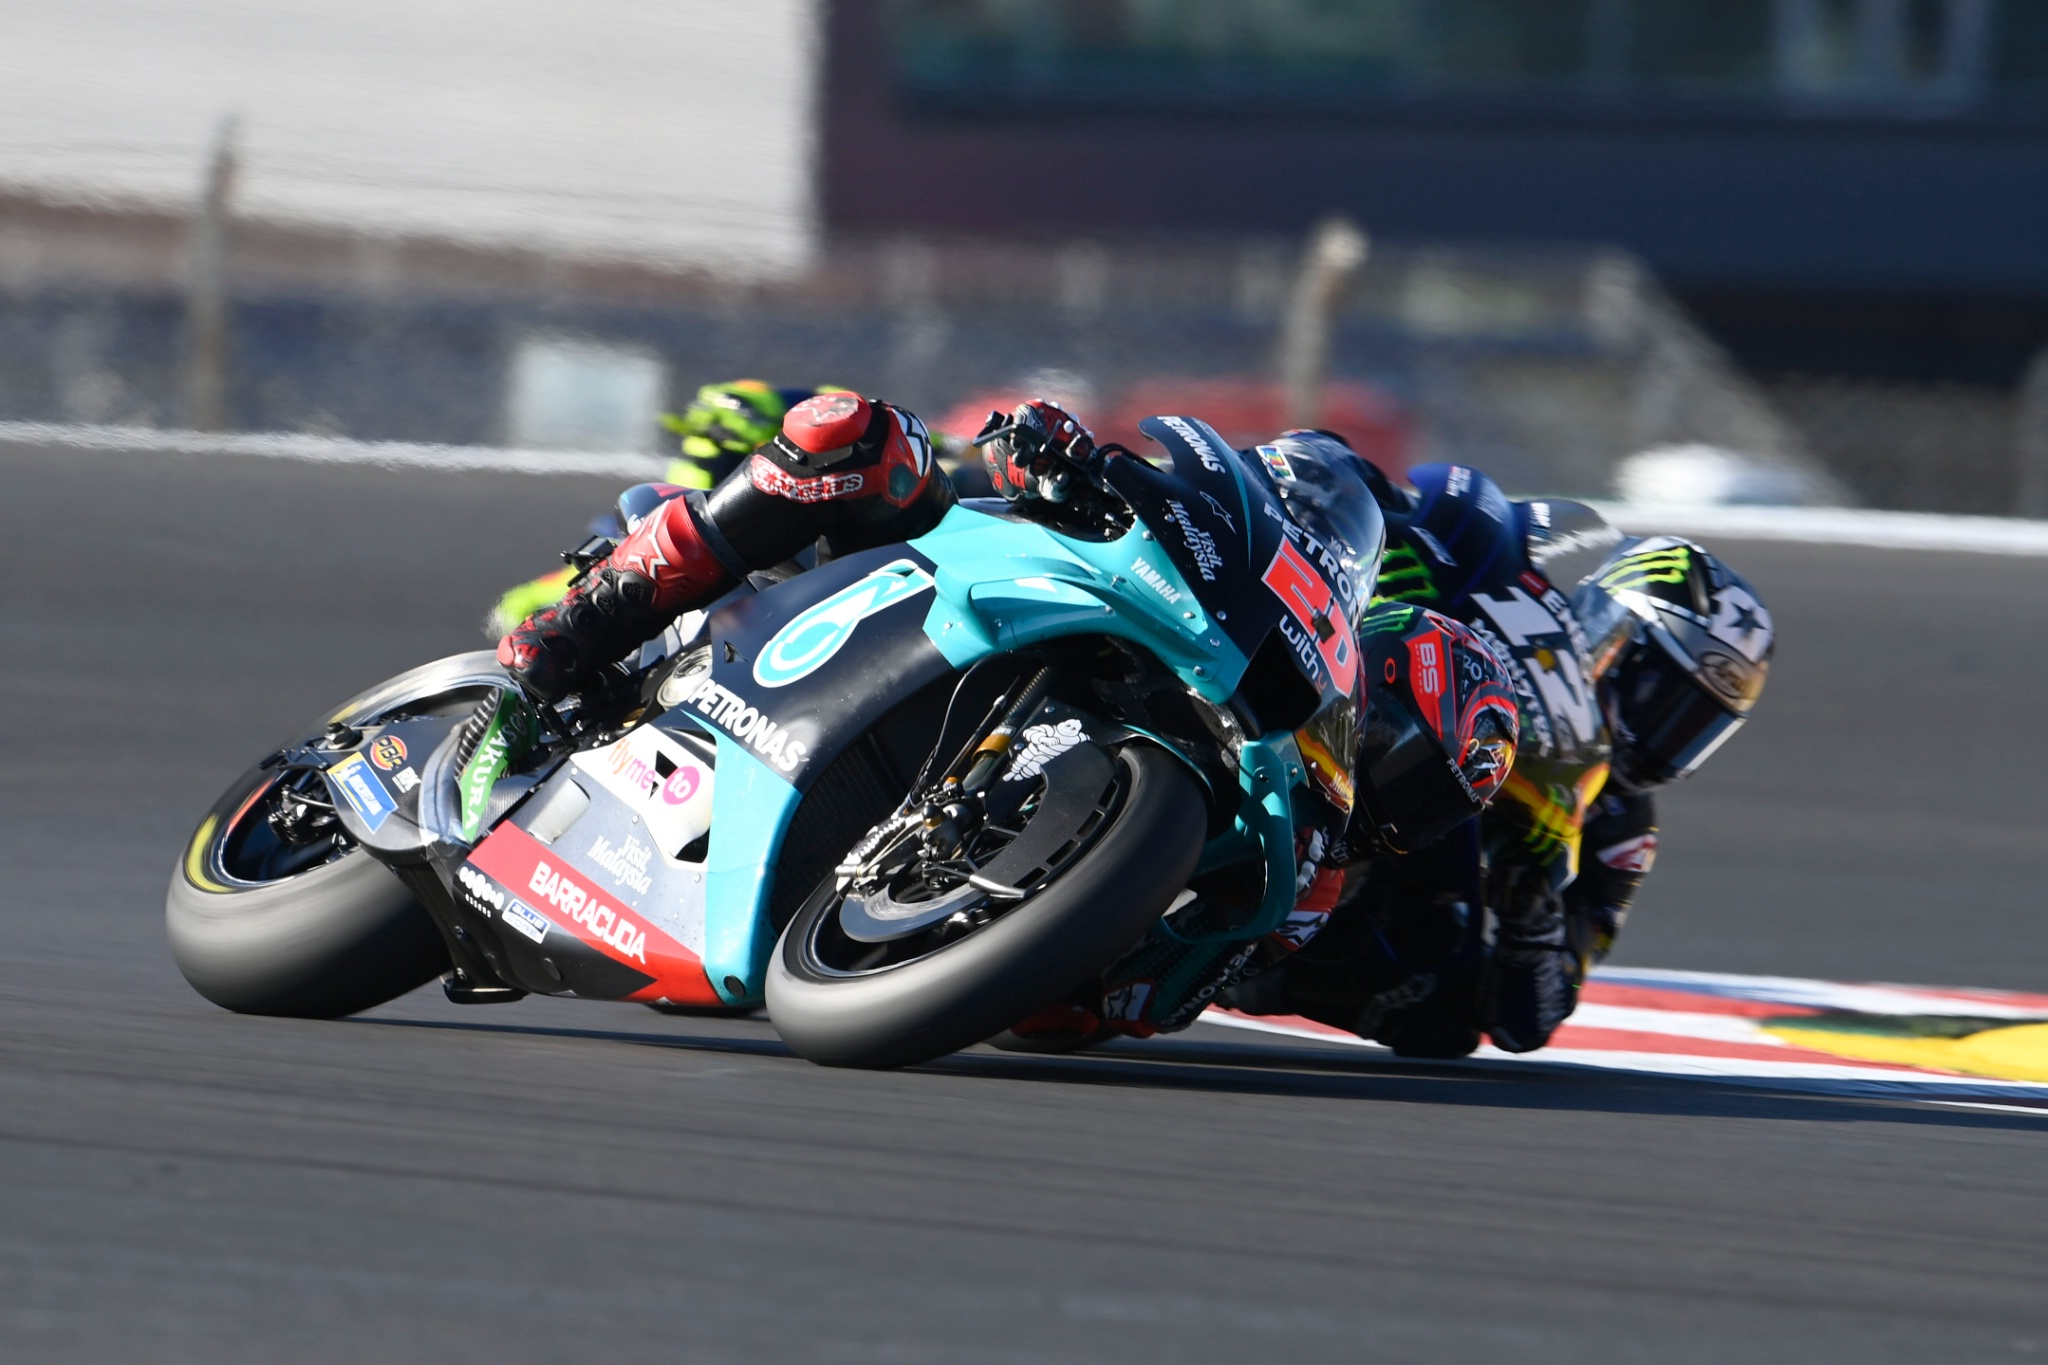 Fabio Quartararo, Maverick Vinales, Portuguese MotoGP race, 22nd November 2020